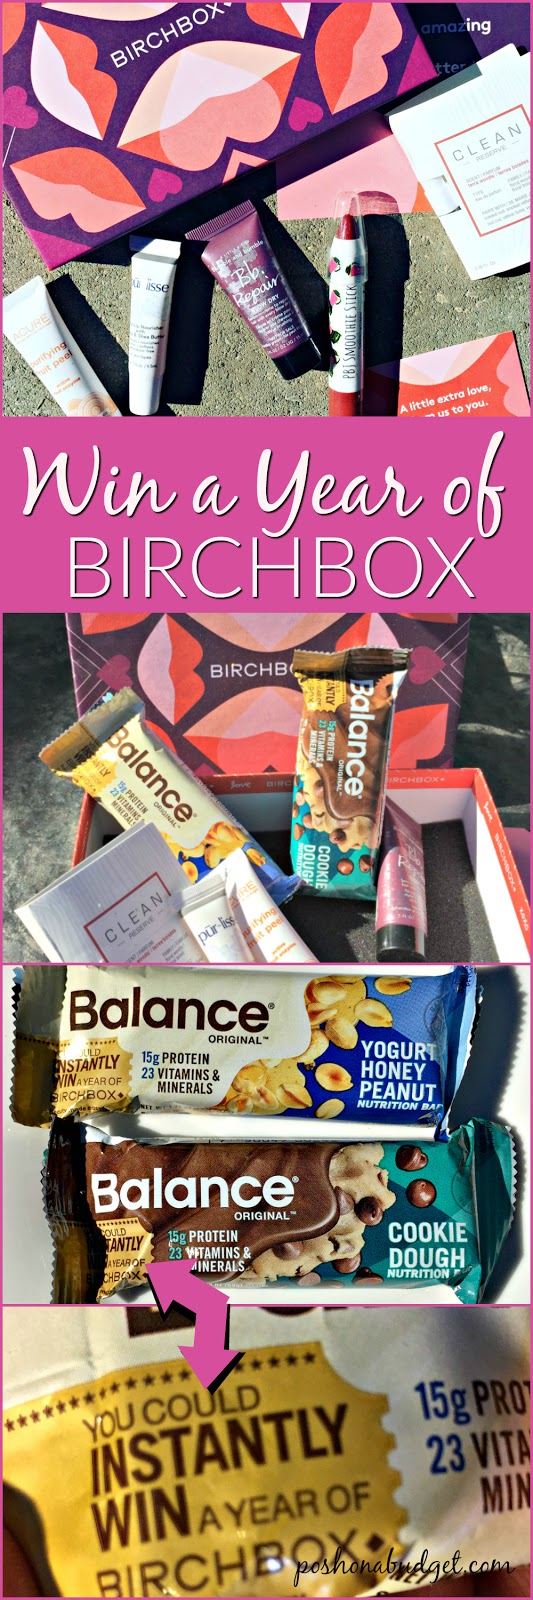 Win a year of Birchbox